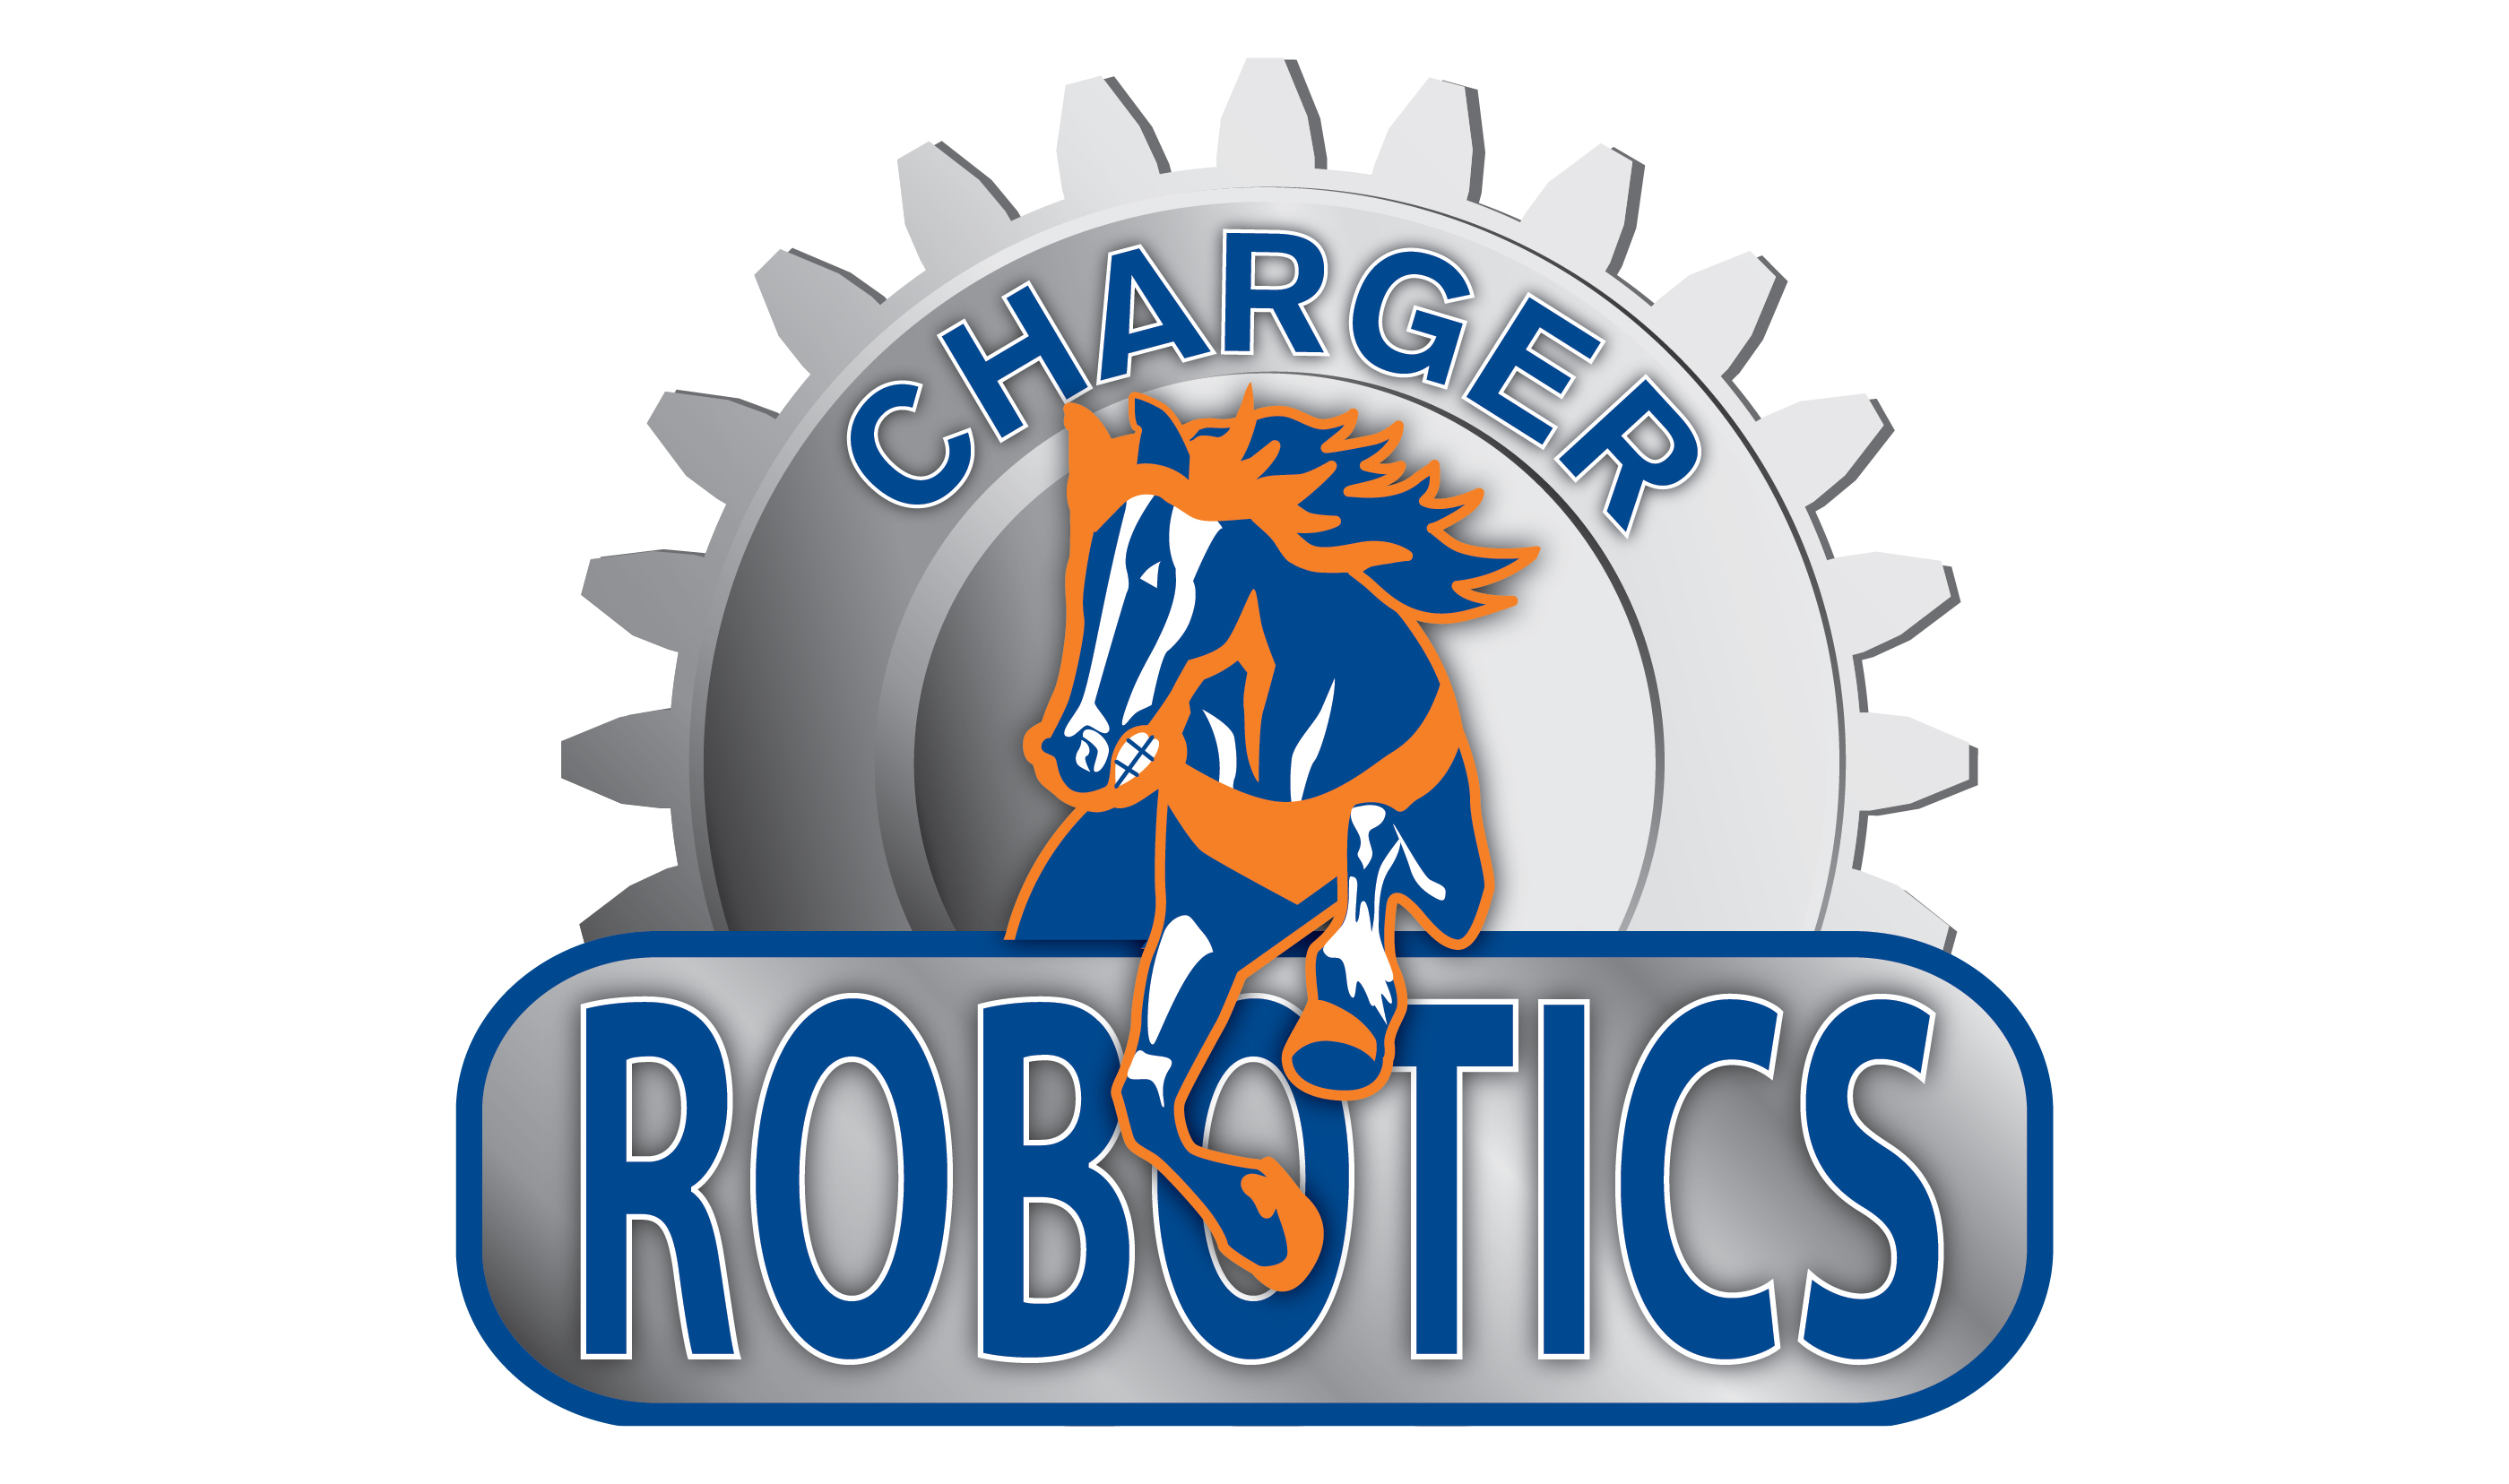 charger robot logo